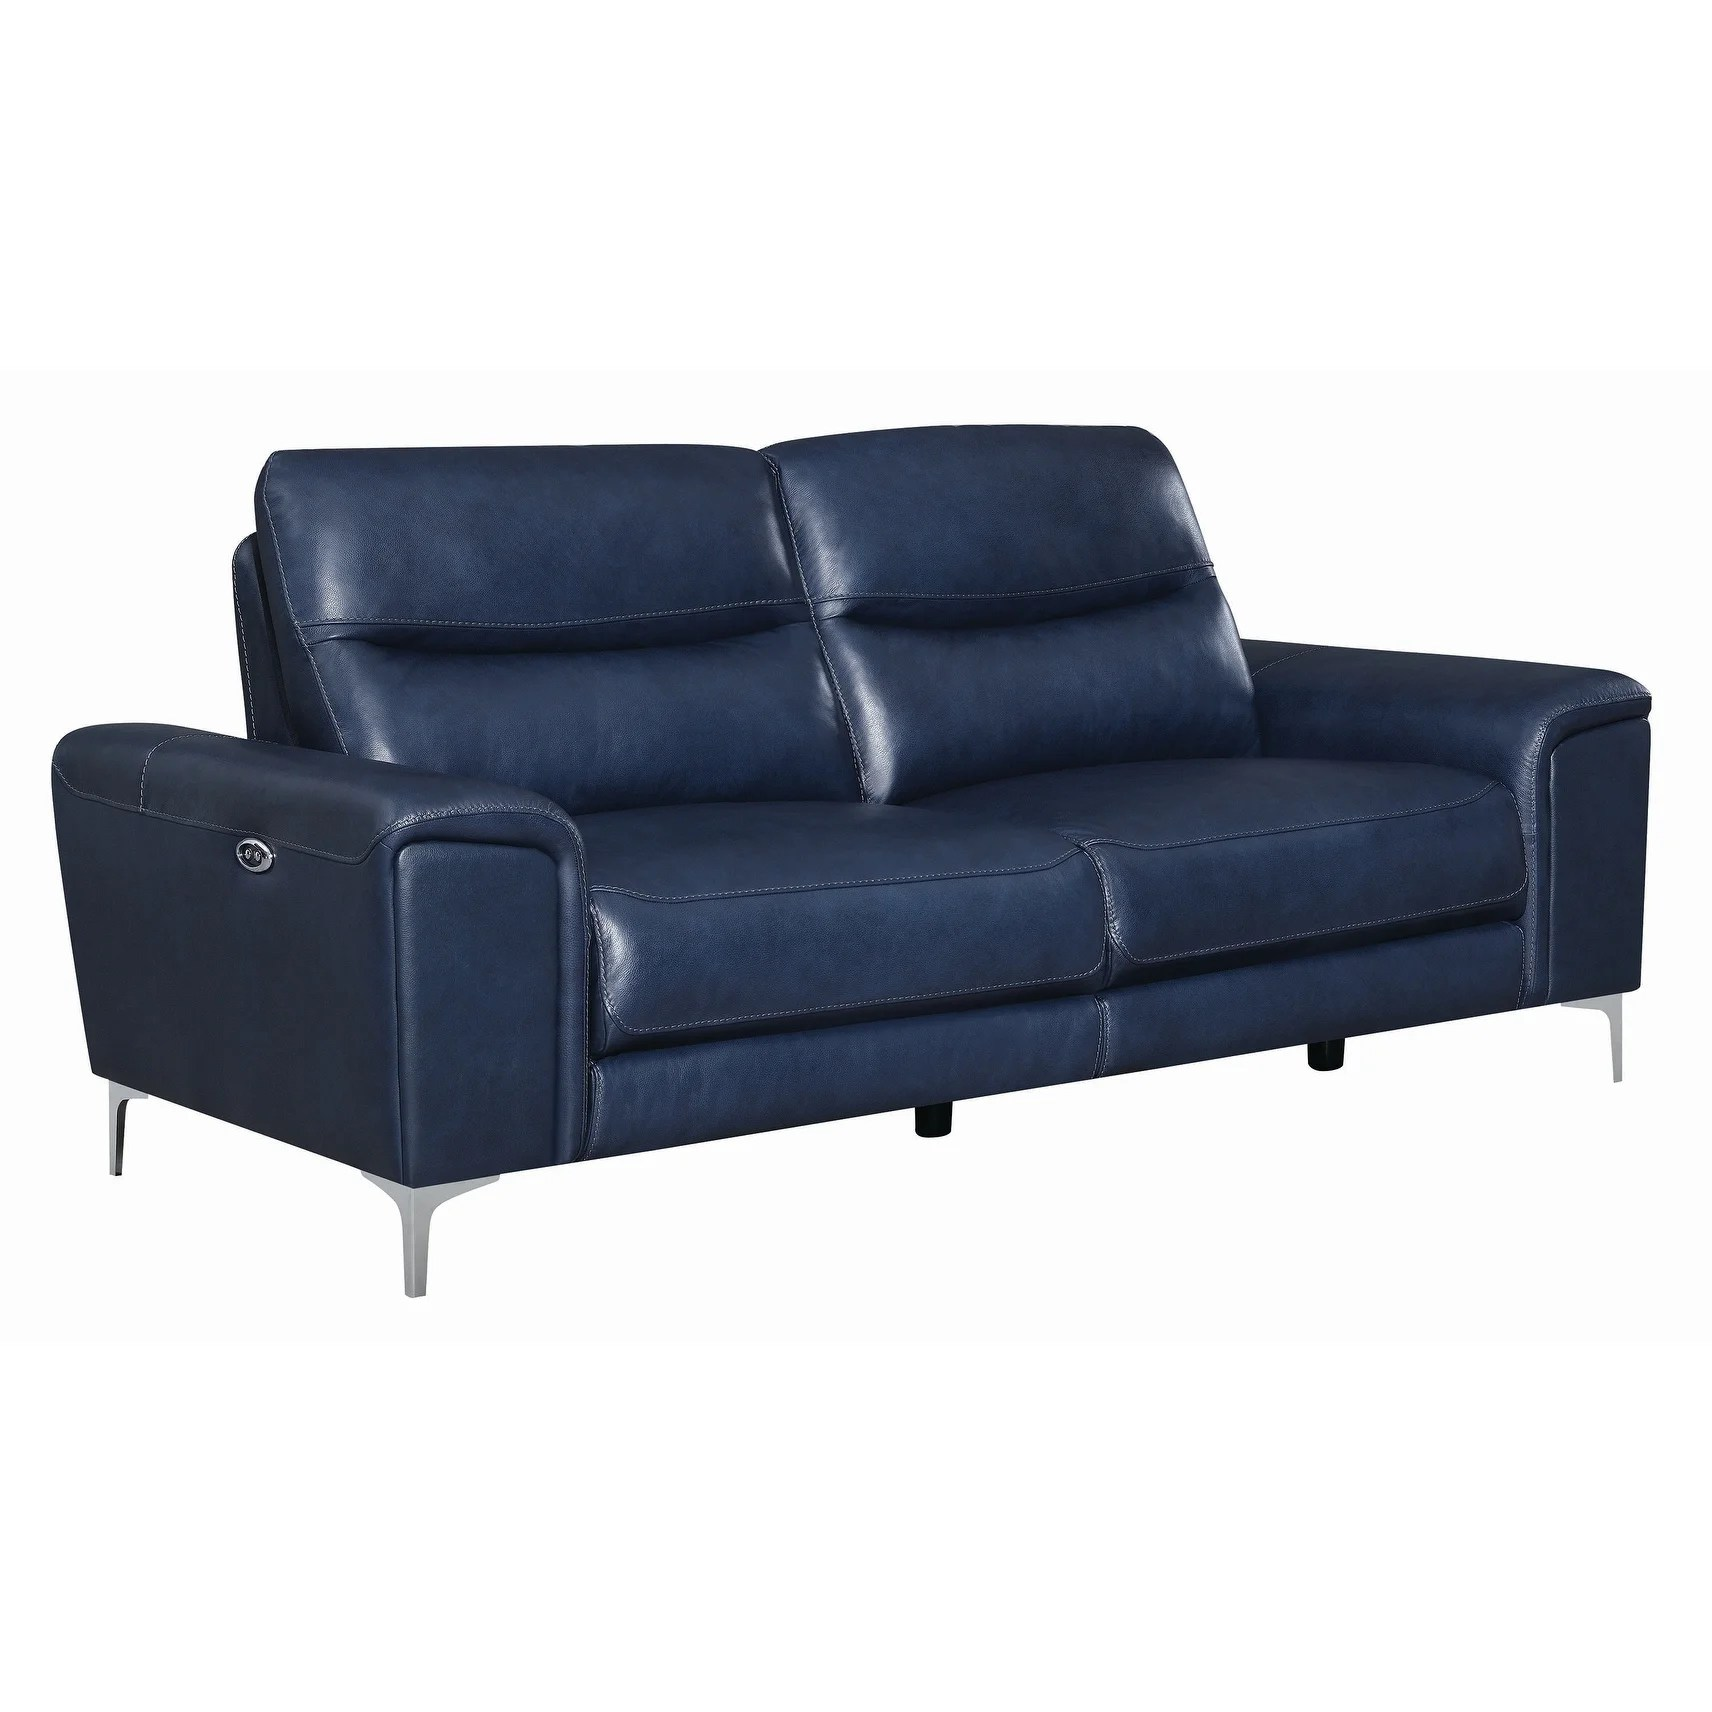 Sofa Legs Ss Buy Stainless Steel Sofas Couches Online At Overstock Our Best